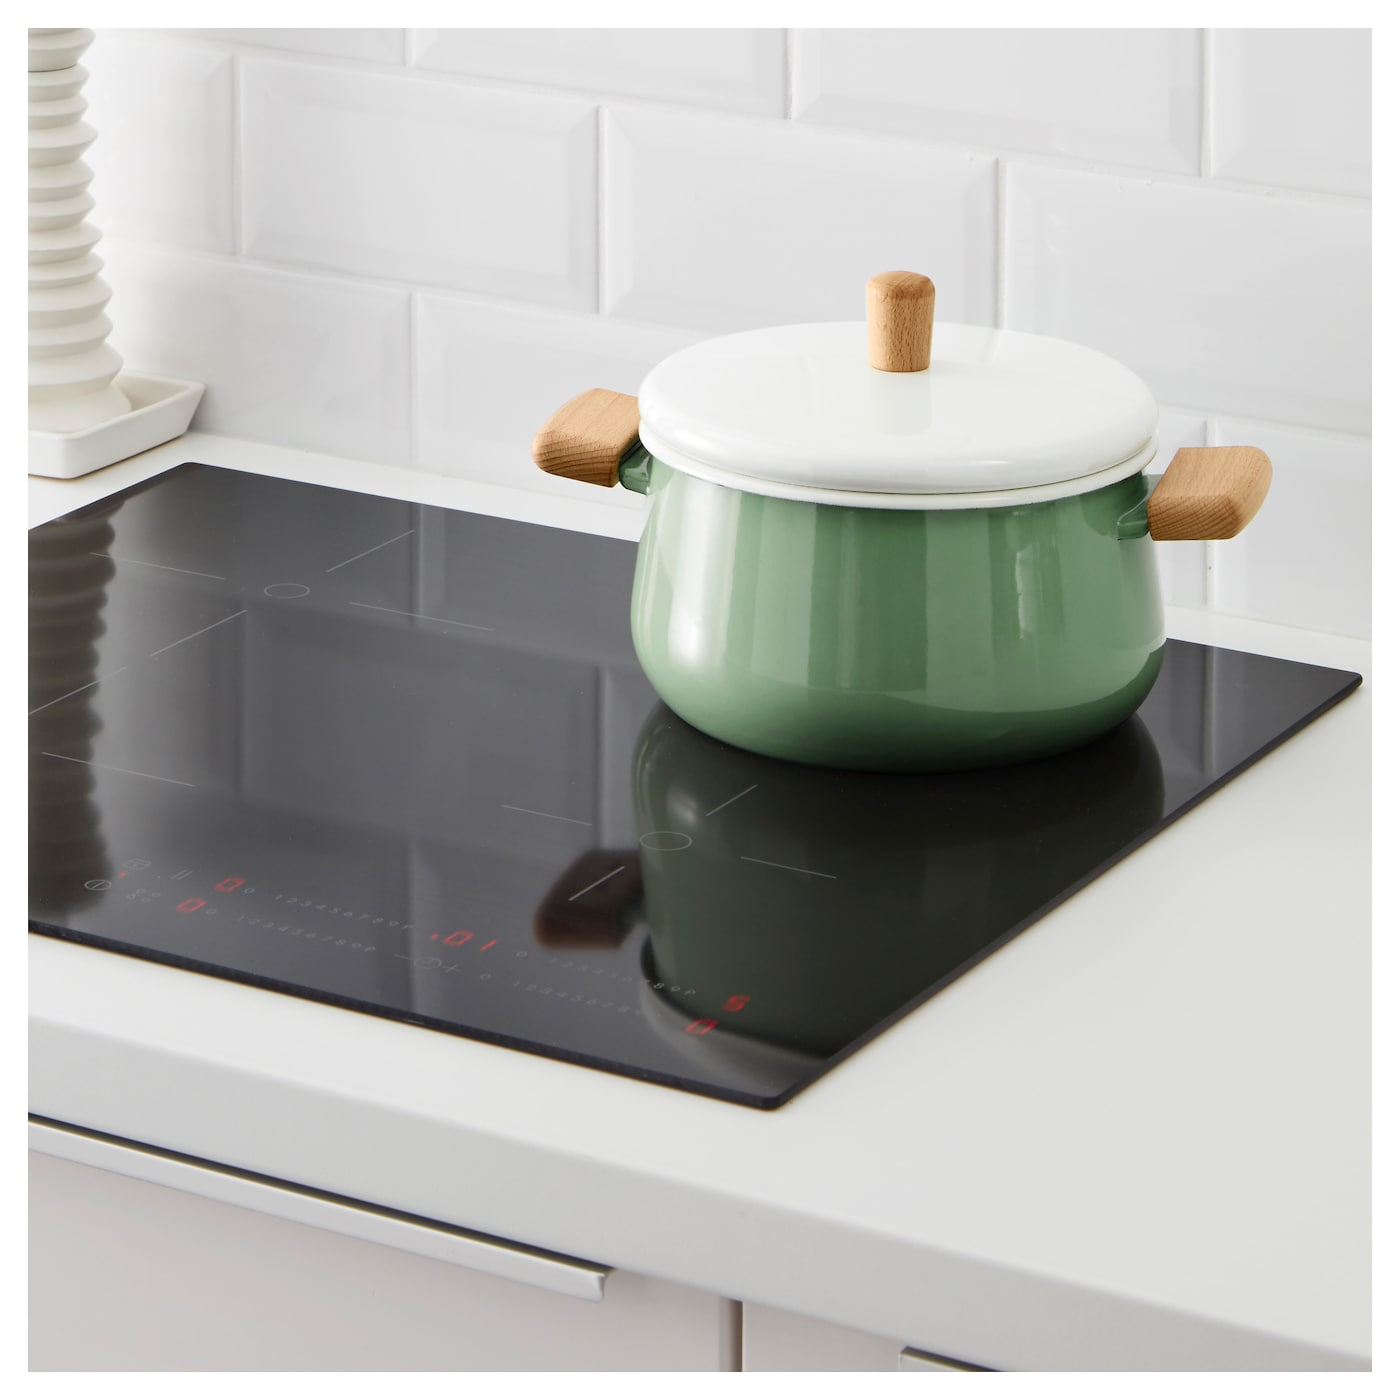 IKEA KASTRULL pot with lid Works well on all types of hobs, including induction hob.